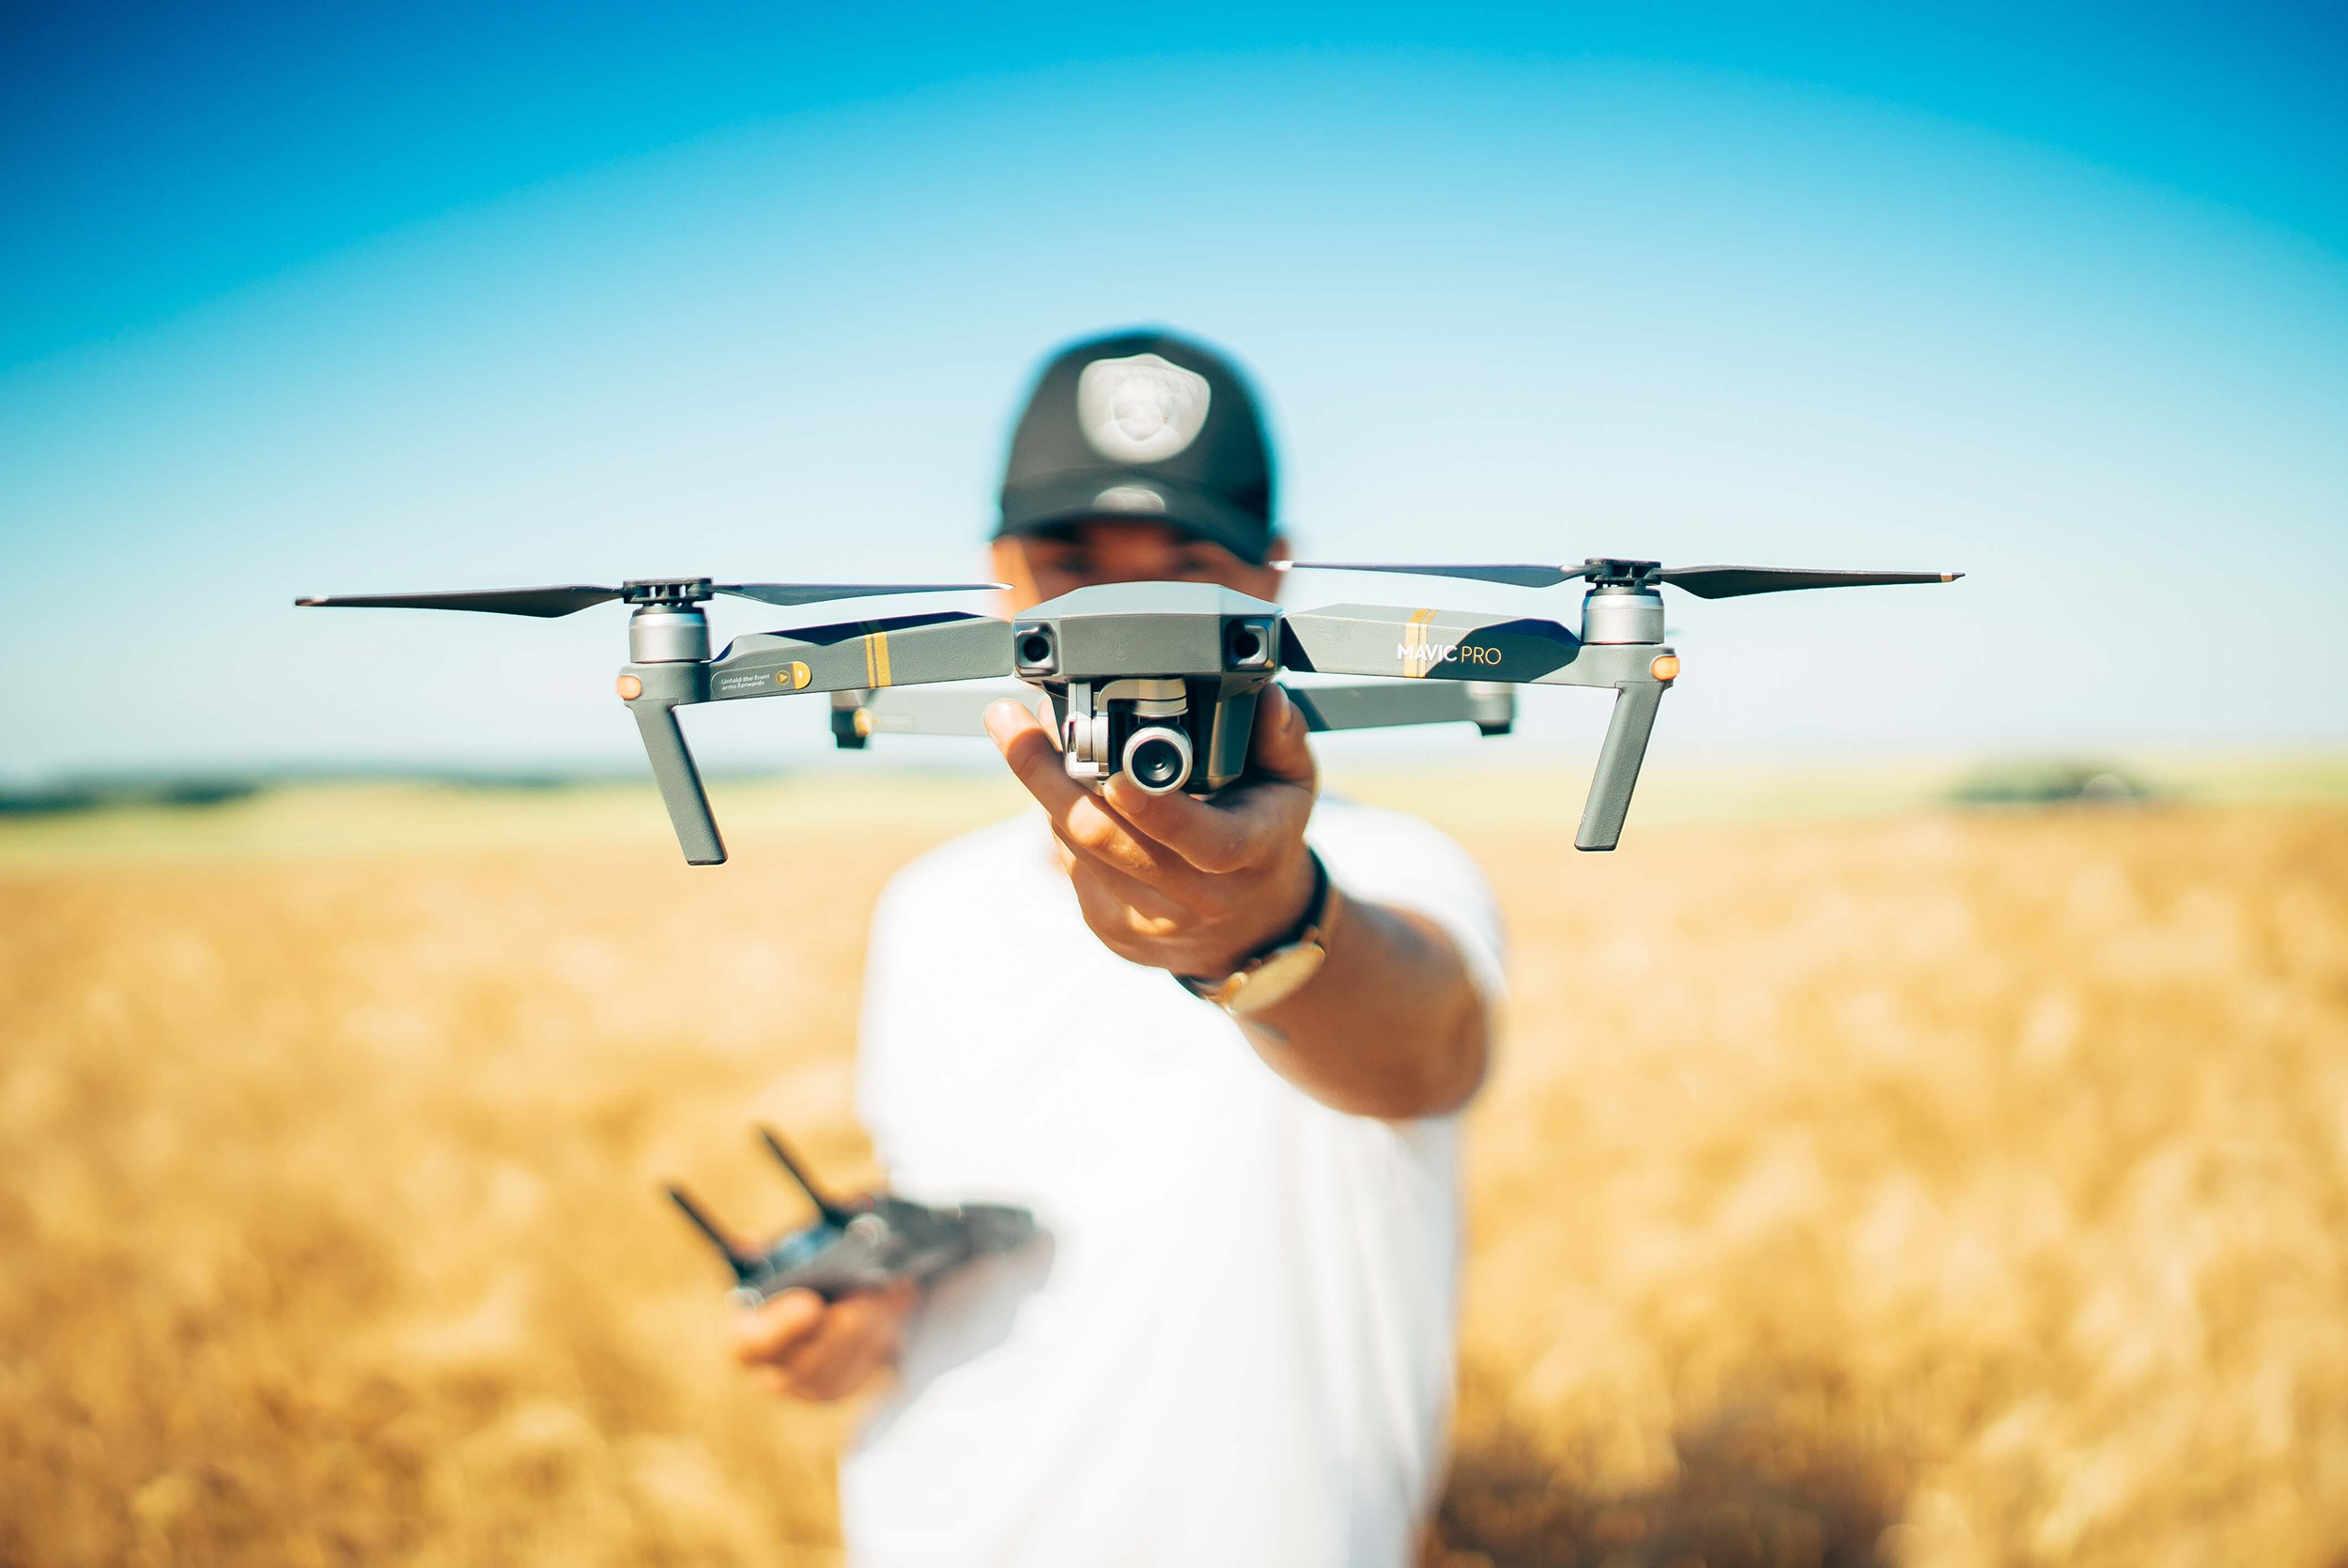 Drone Accessories to Protect Your Drone